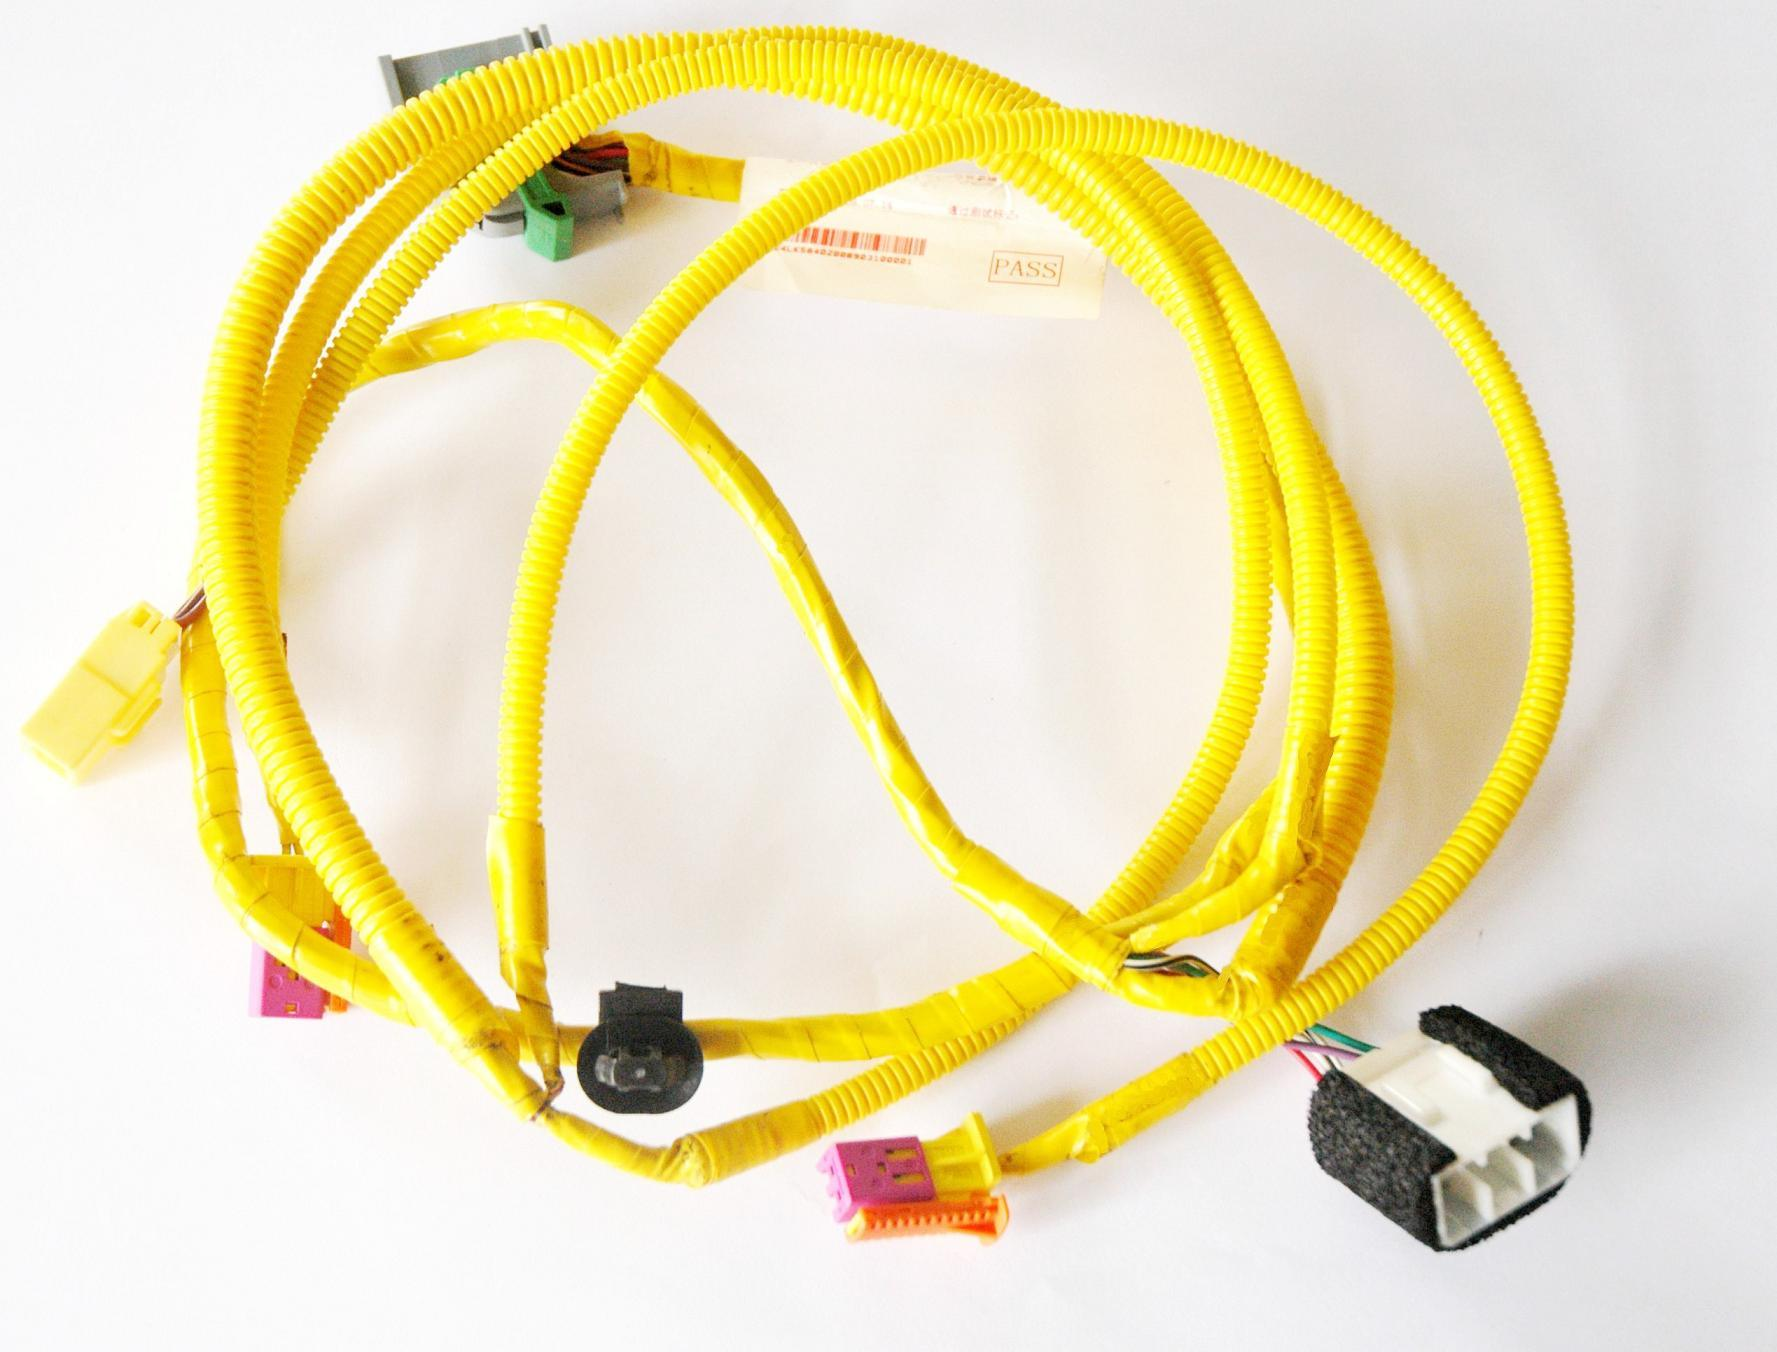 Cheap Hot Rod Wiring Harness Diagrams Kits Industrial Wire Material Get Free Australia